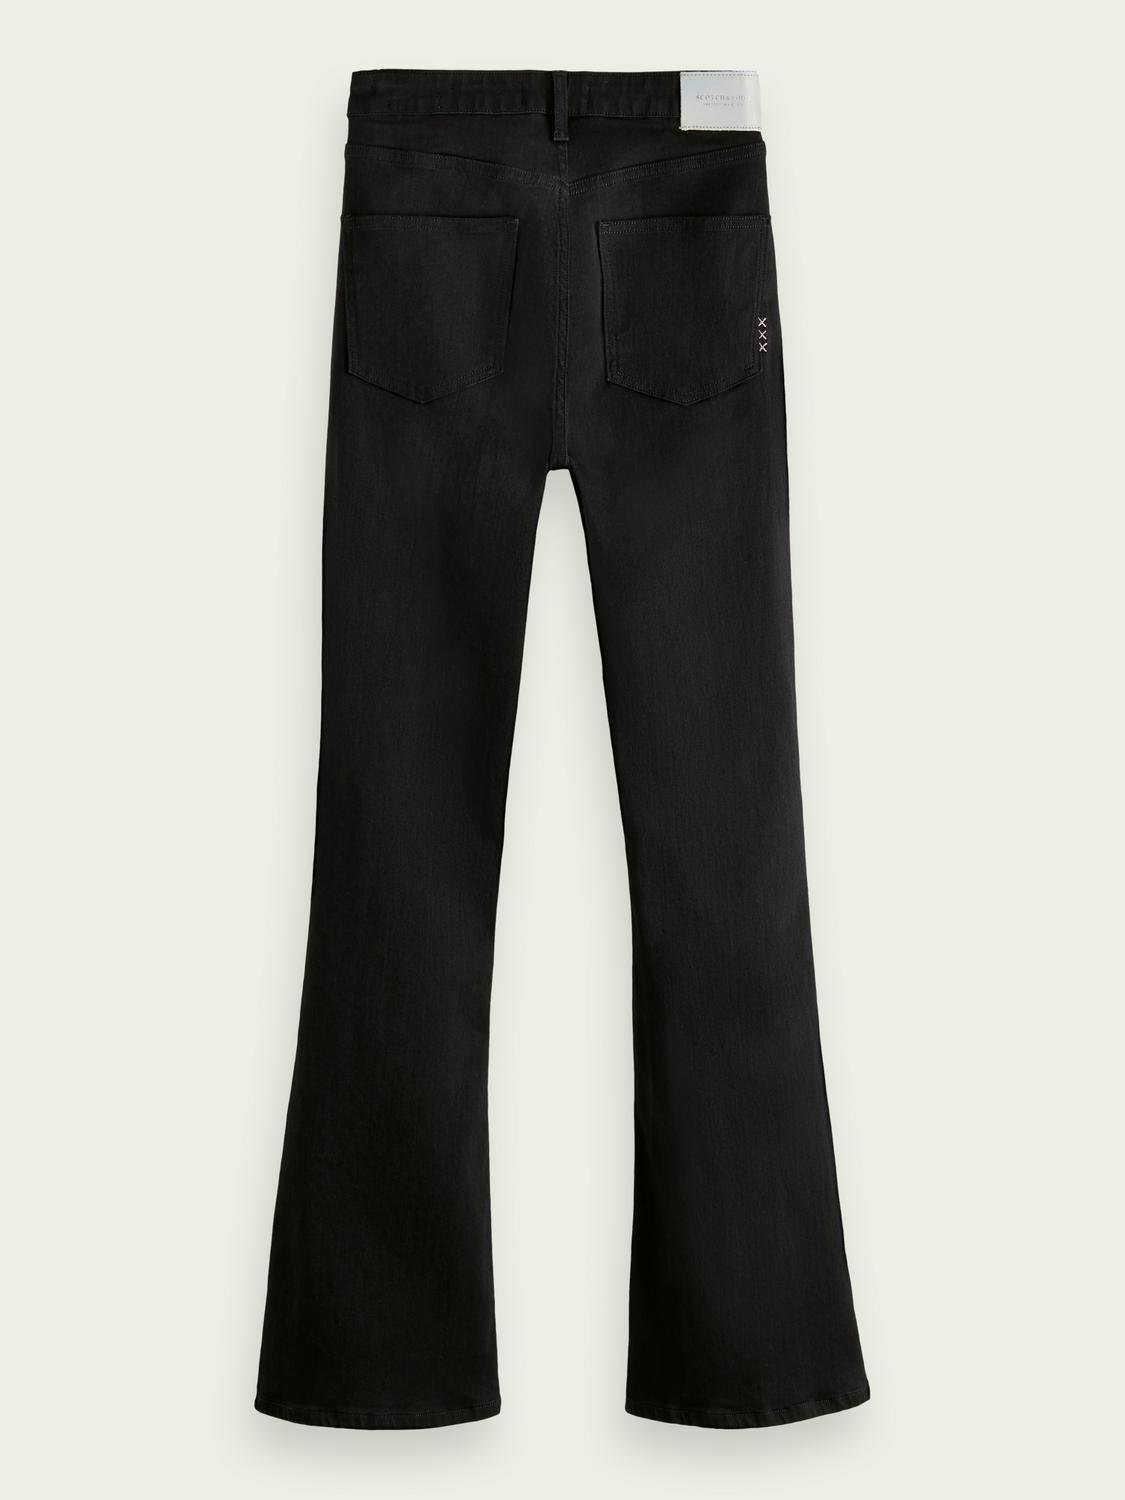 The Charm high-rise flared jeans —Think Different 6